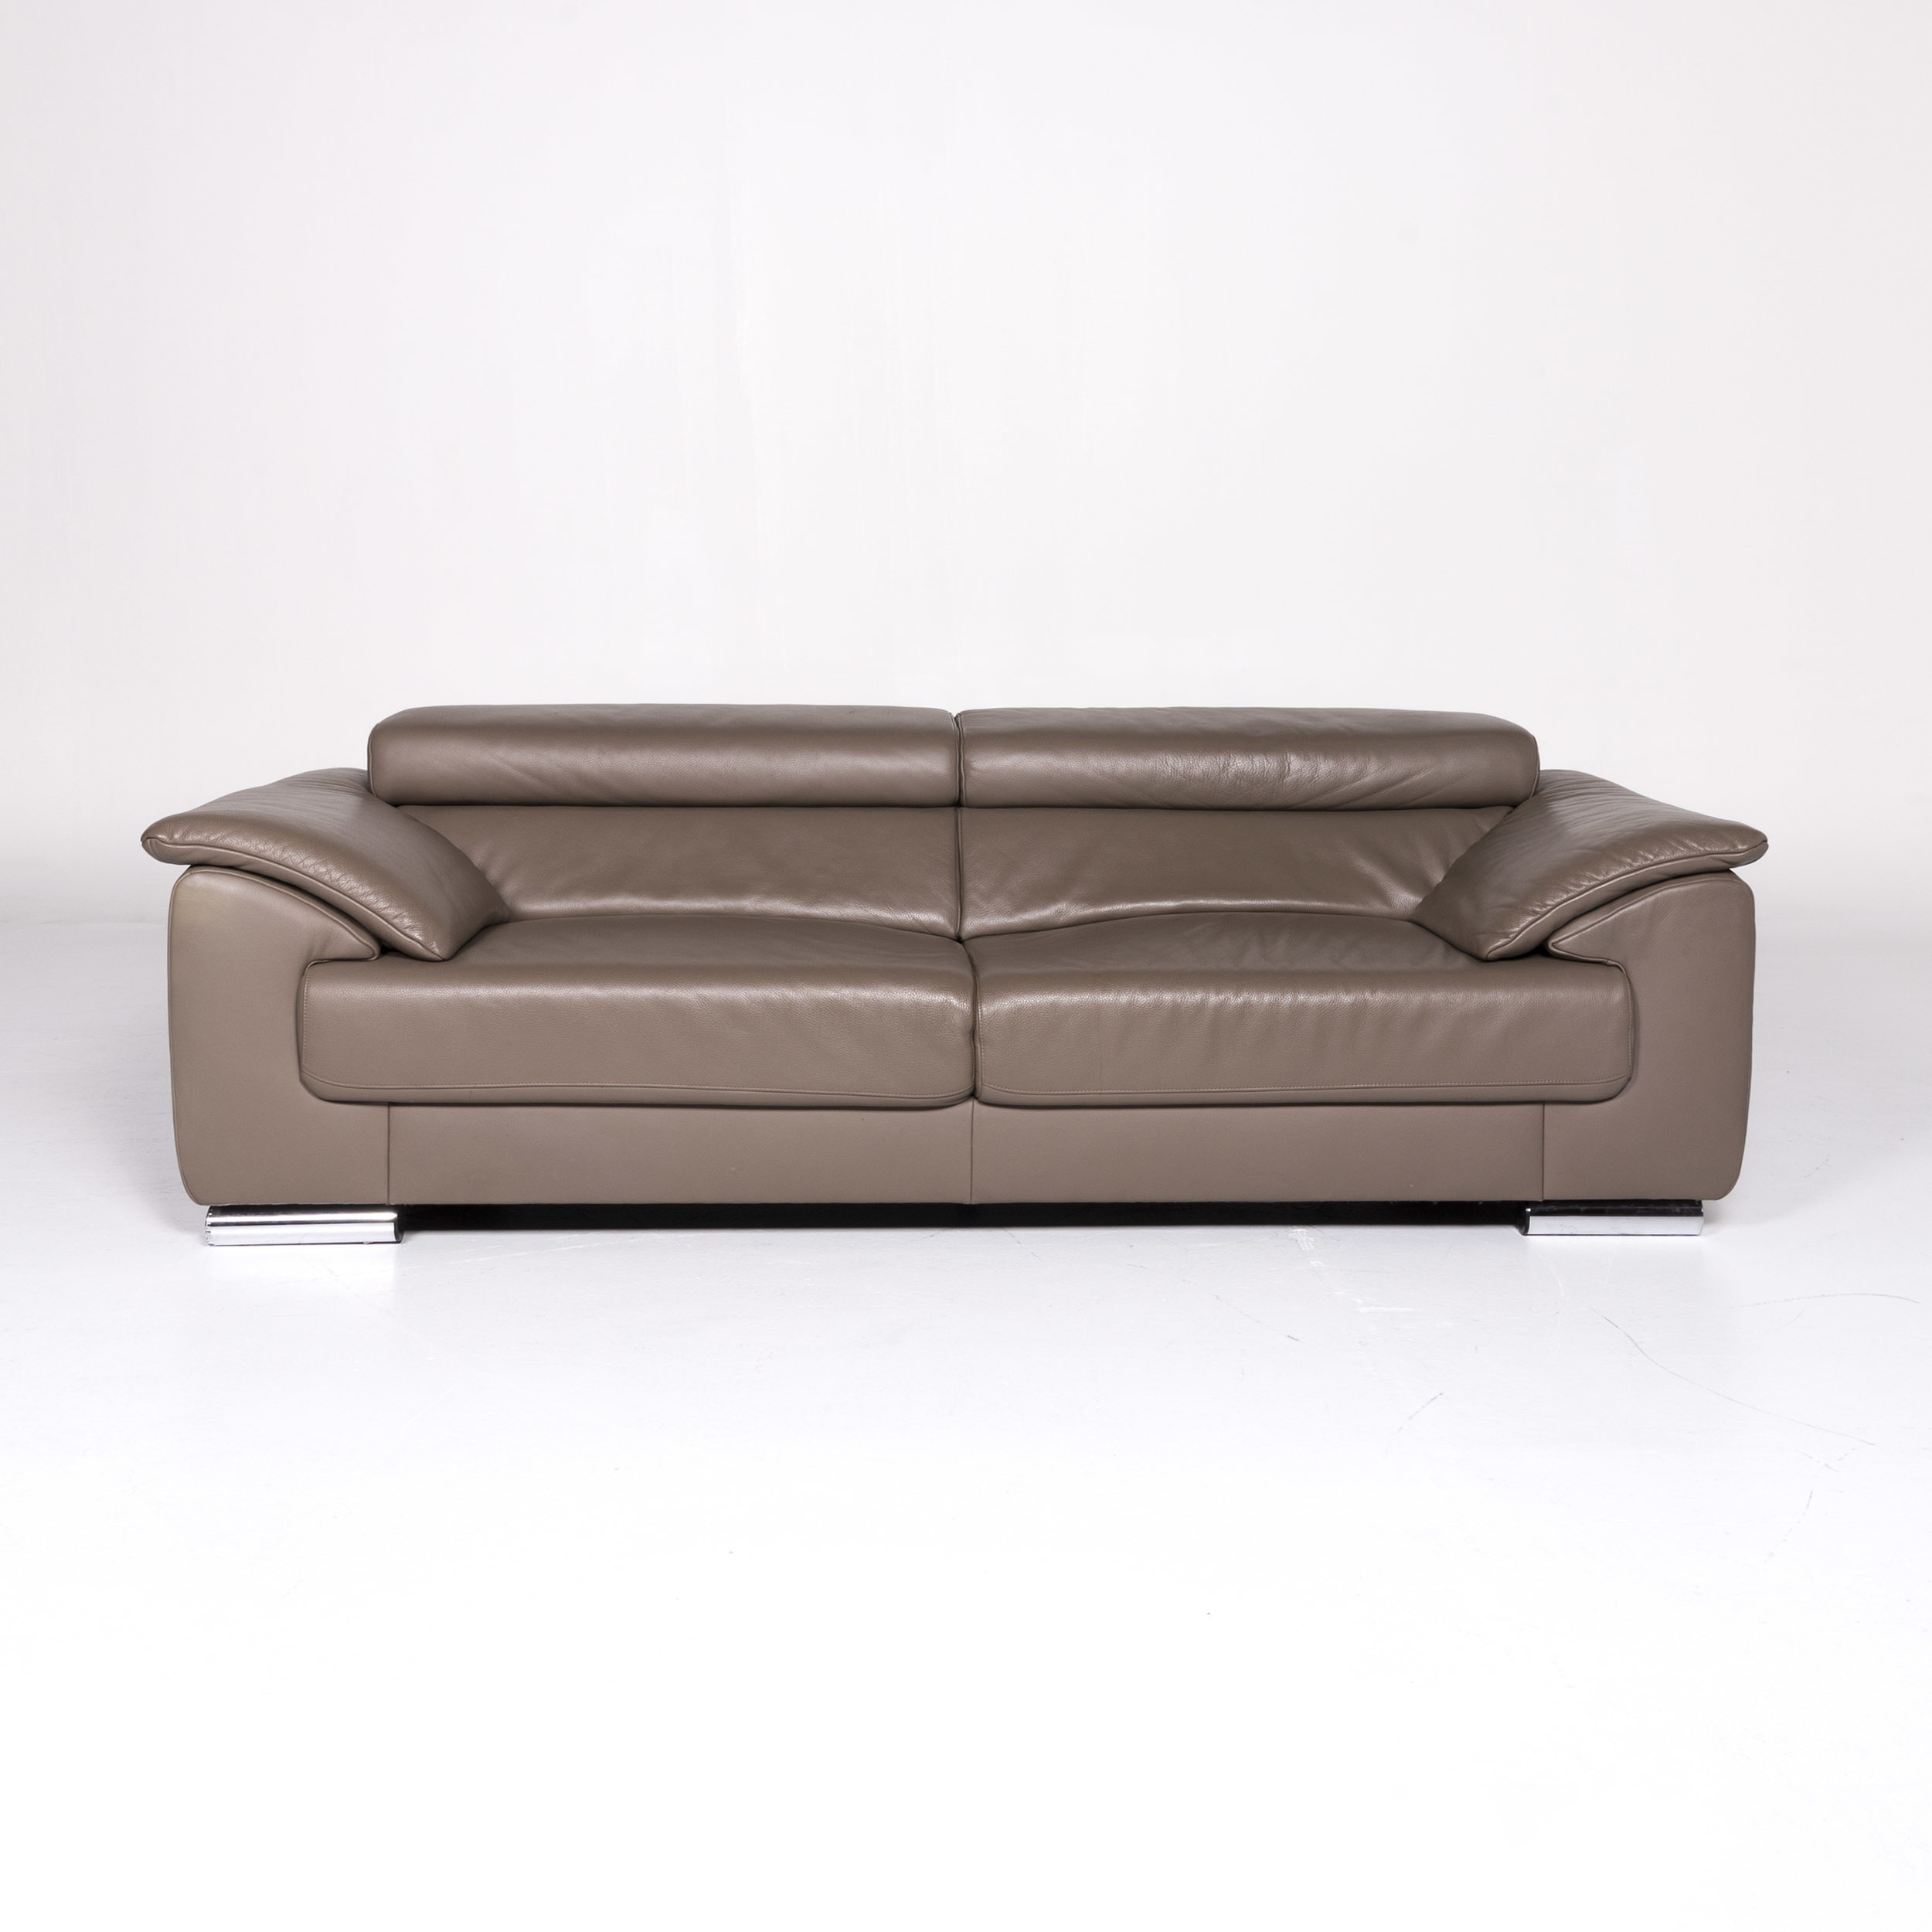 Ewald Schillig Designer Sofa Ewald Schillig Brand Blues Leather Designer Sofa Brown Three Seater 9131